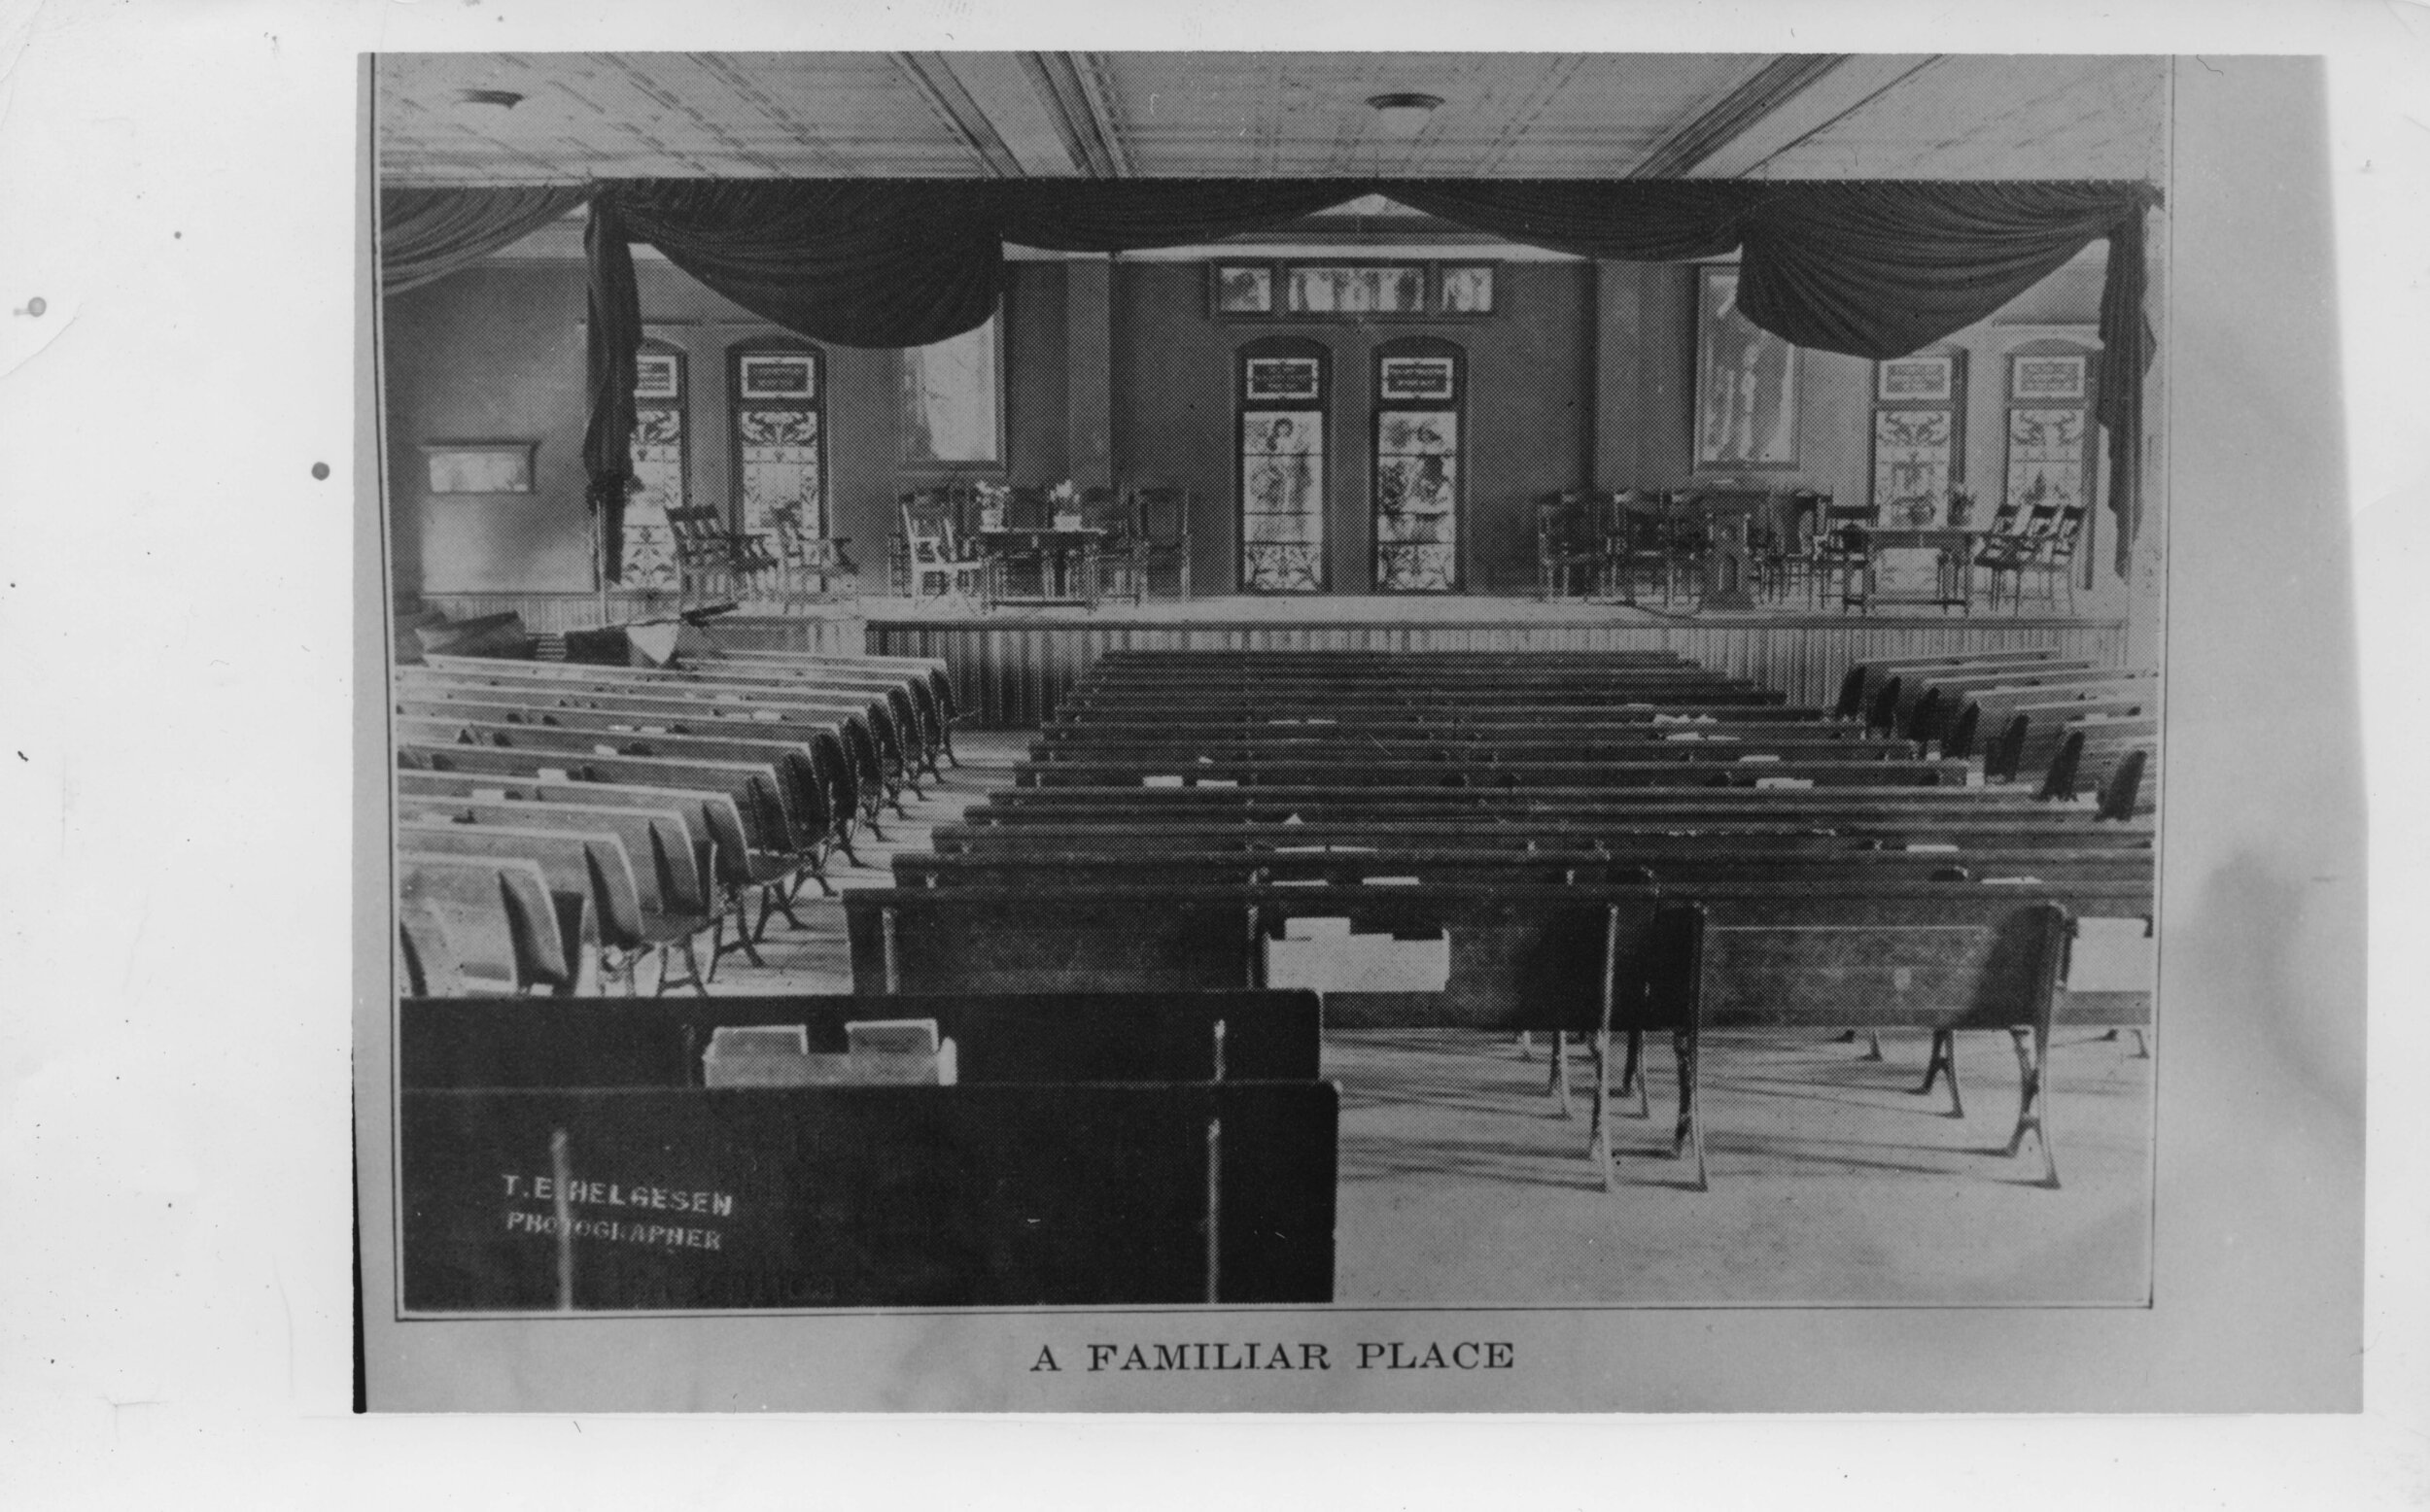 Cranford Hall Auditorium - Built in 1890, the auditorium served as the primary performance space at the State Normal School (later Colorado State Teachers College and, still later, the University of Northern Colorado) until 1949 when an arson-set fire made the space unusable. (Image use courtesy of Special Collections, Michener Library, University of Northern Colorado.)